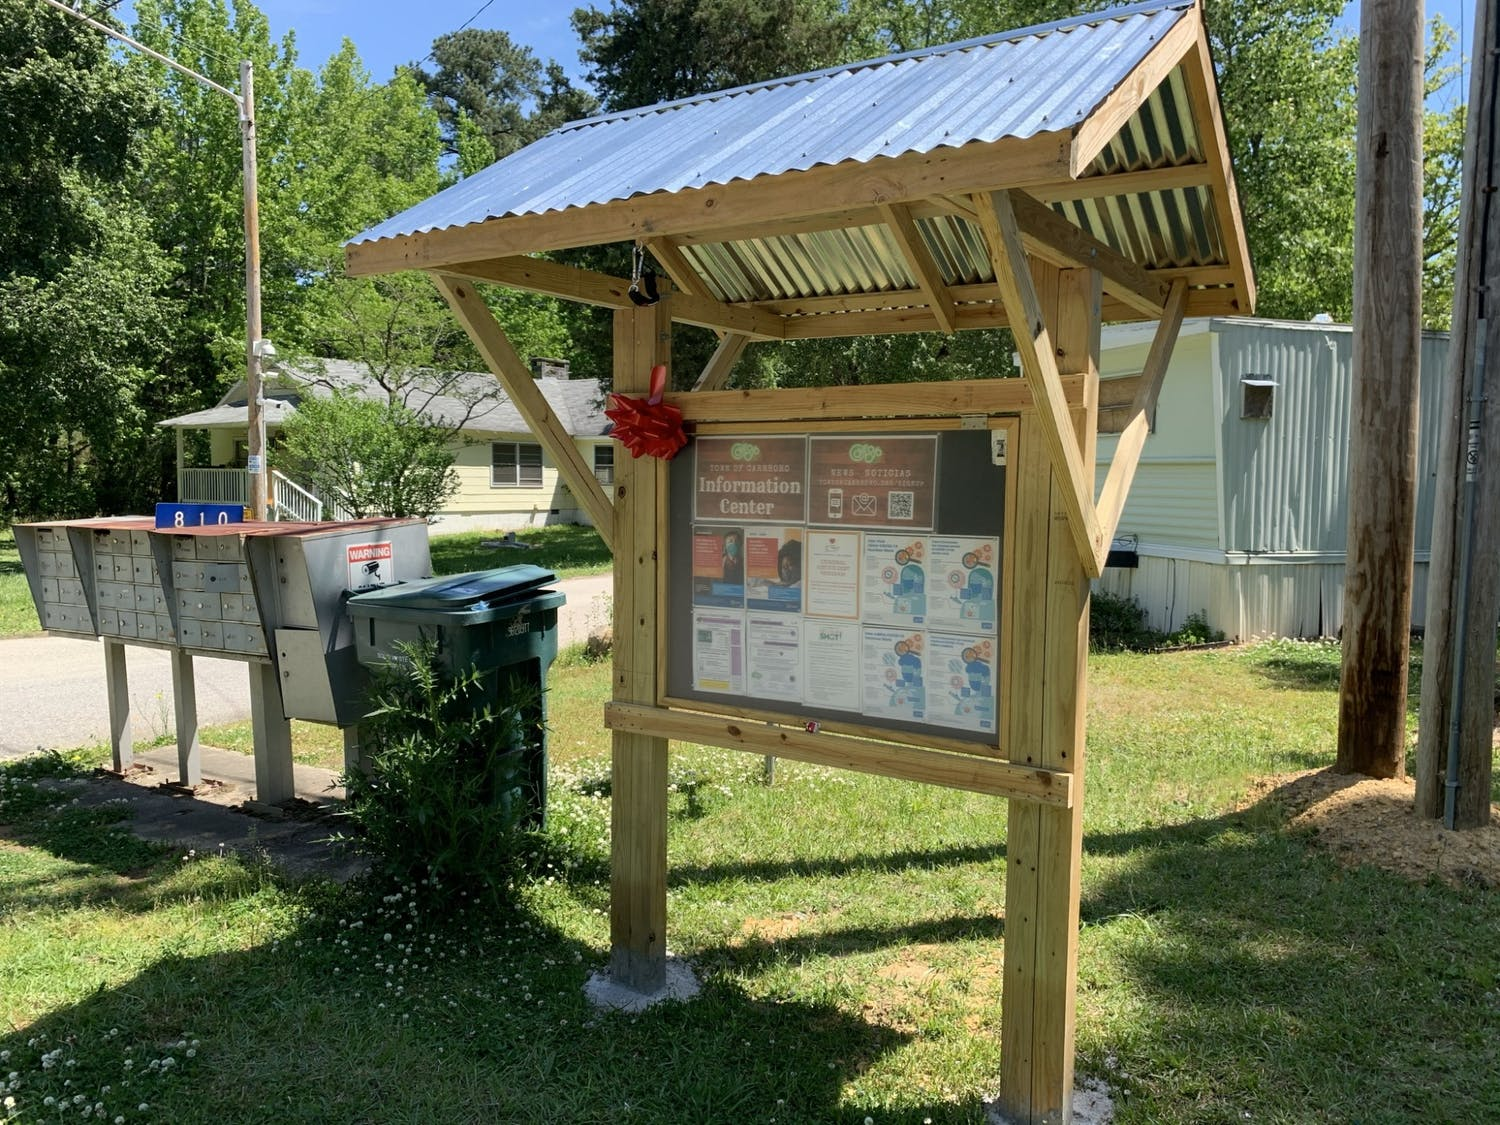 Carrboro won an Award of Excellence for installing Town Information Centers in locations like Pine Grove. Photo courtesy of Town of Carrboro/Catherine Lazorko.